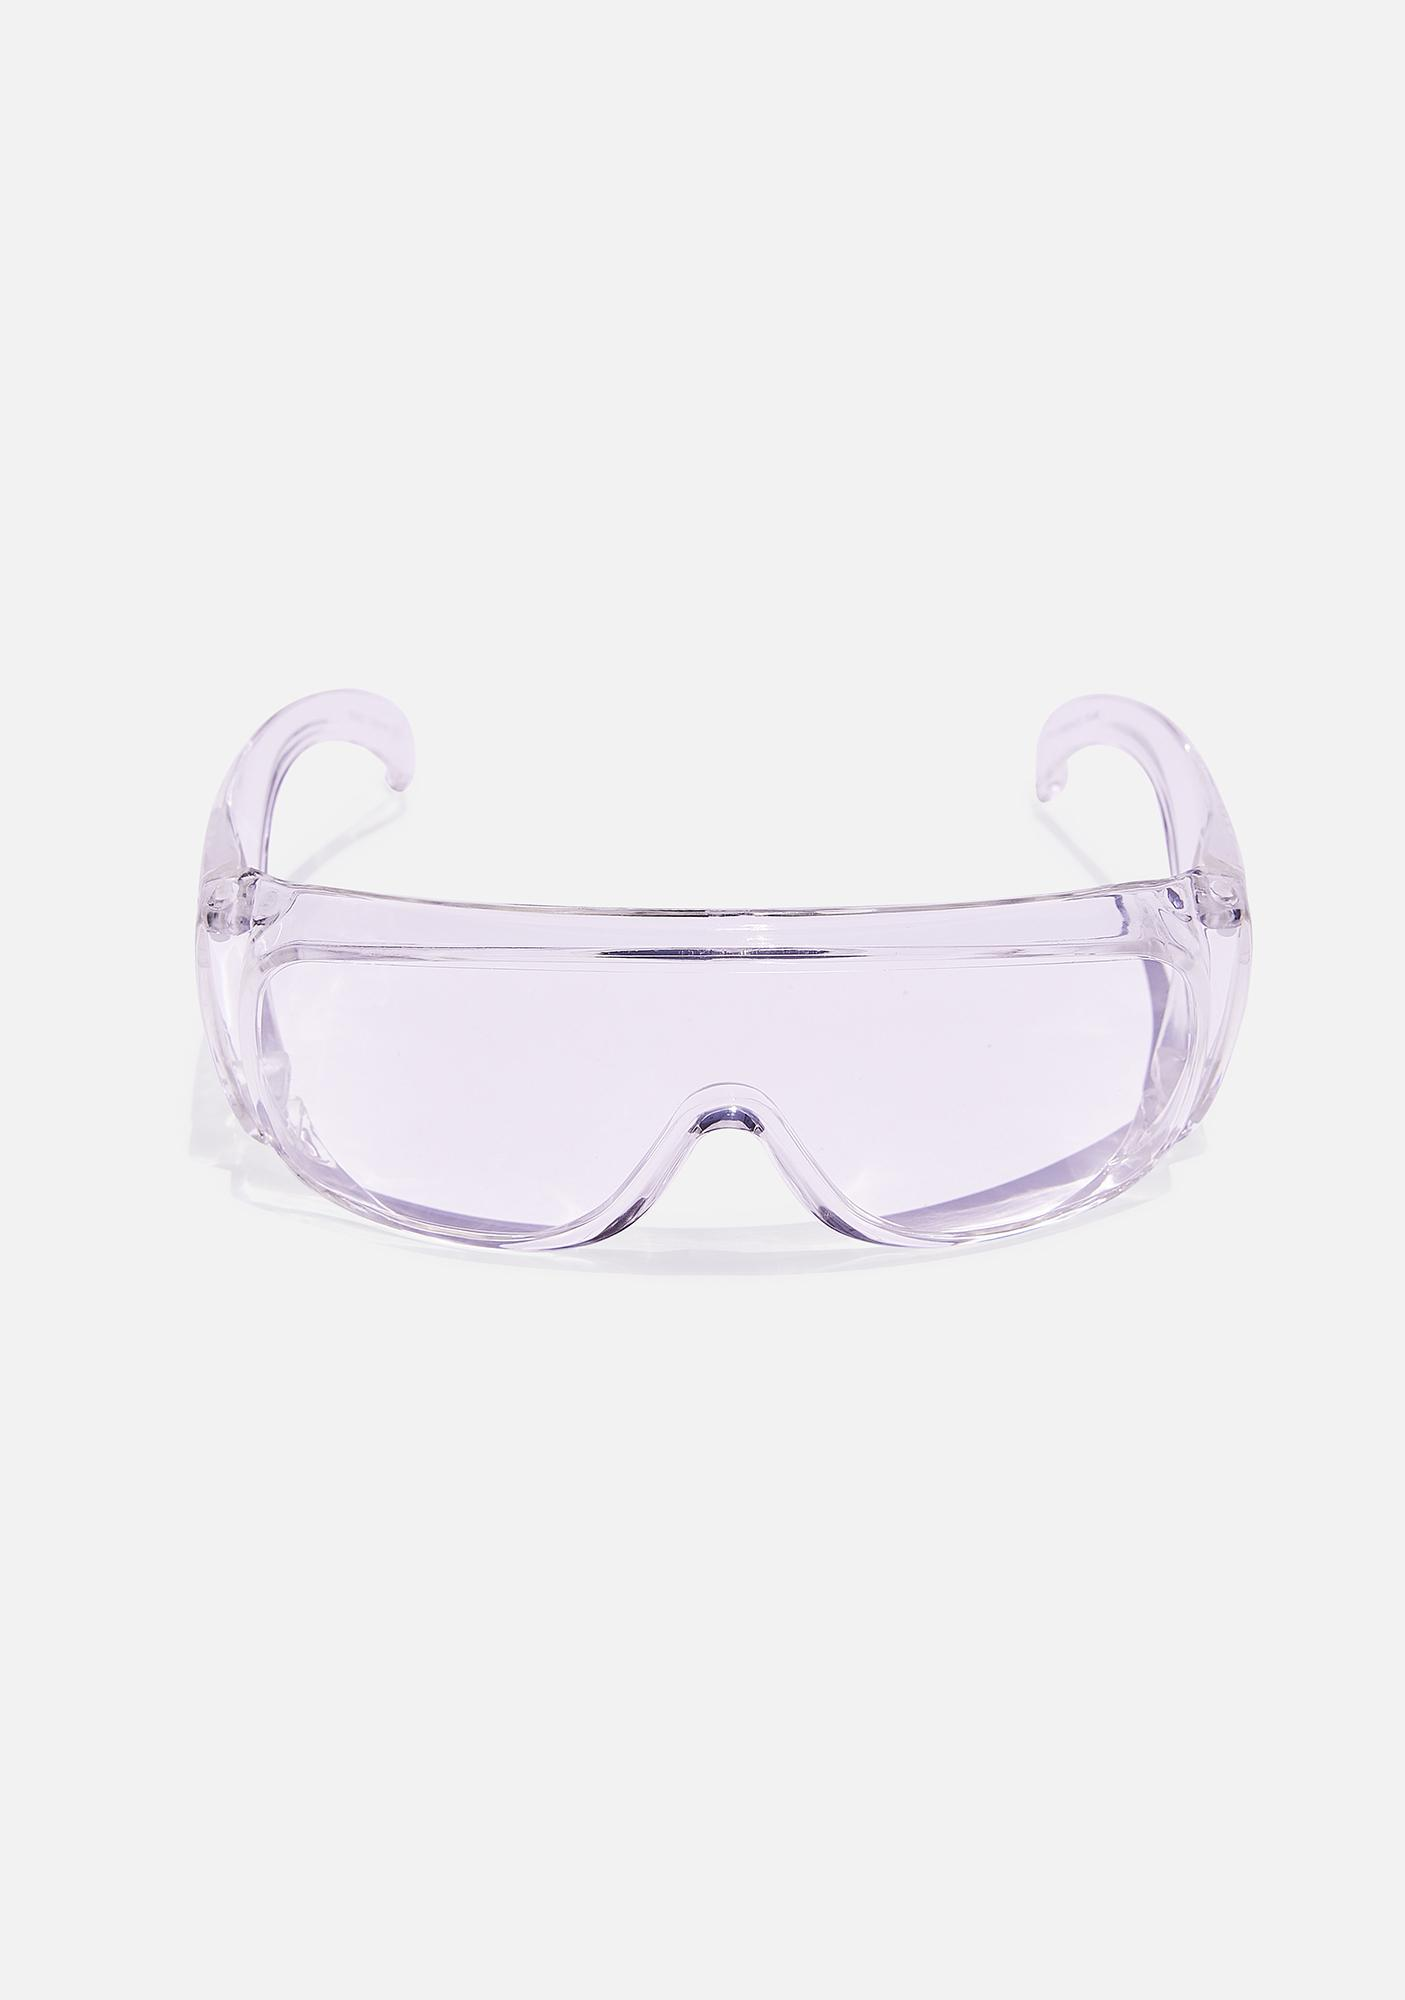 Good Times Eyewear Clear Oversized Shield Sunglasses